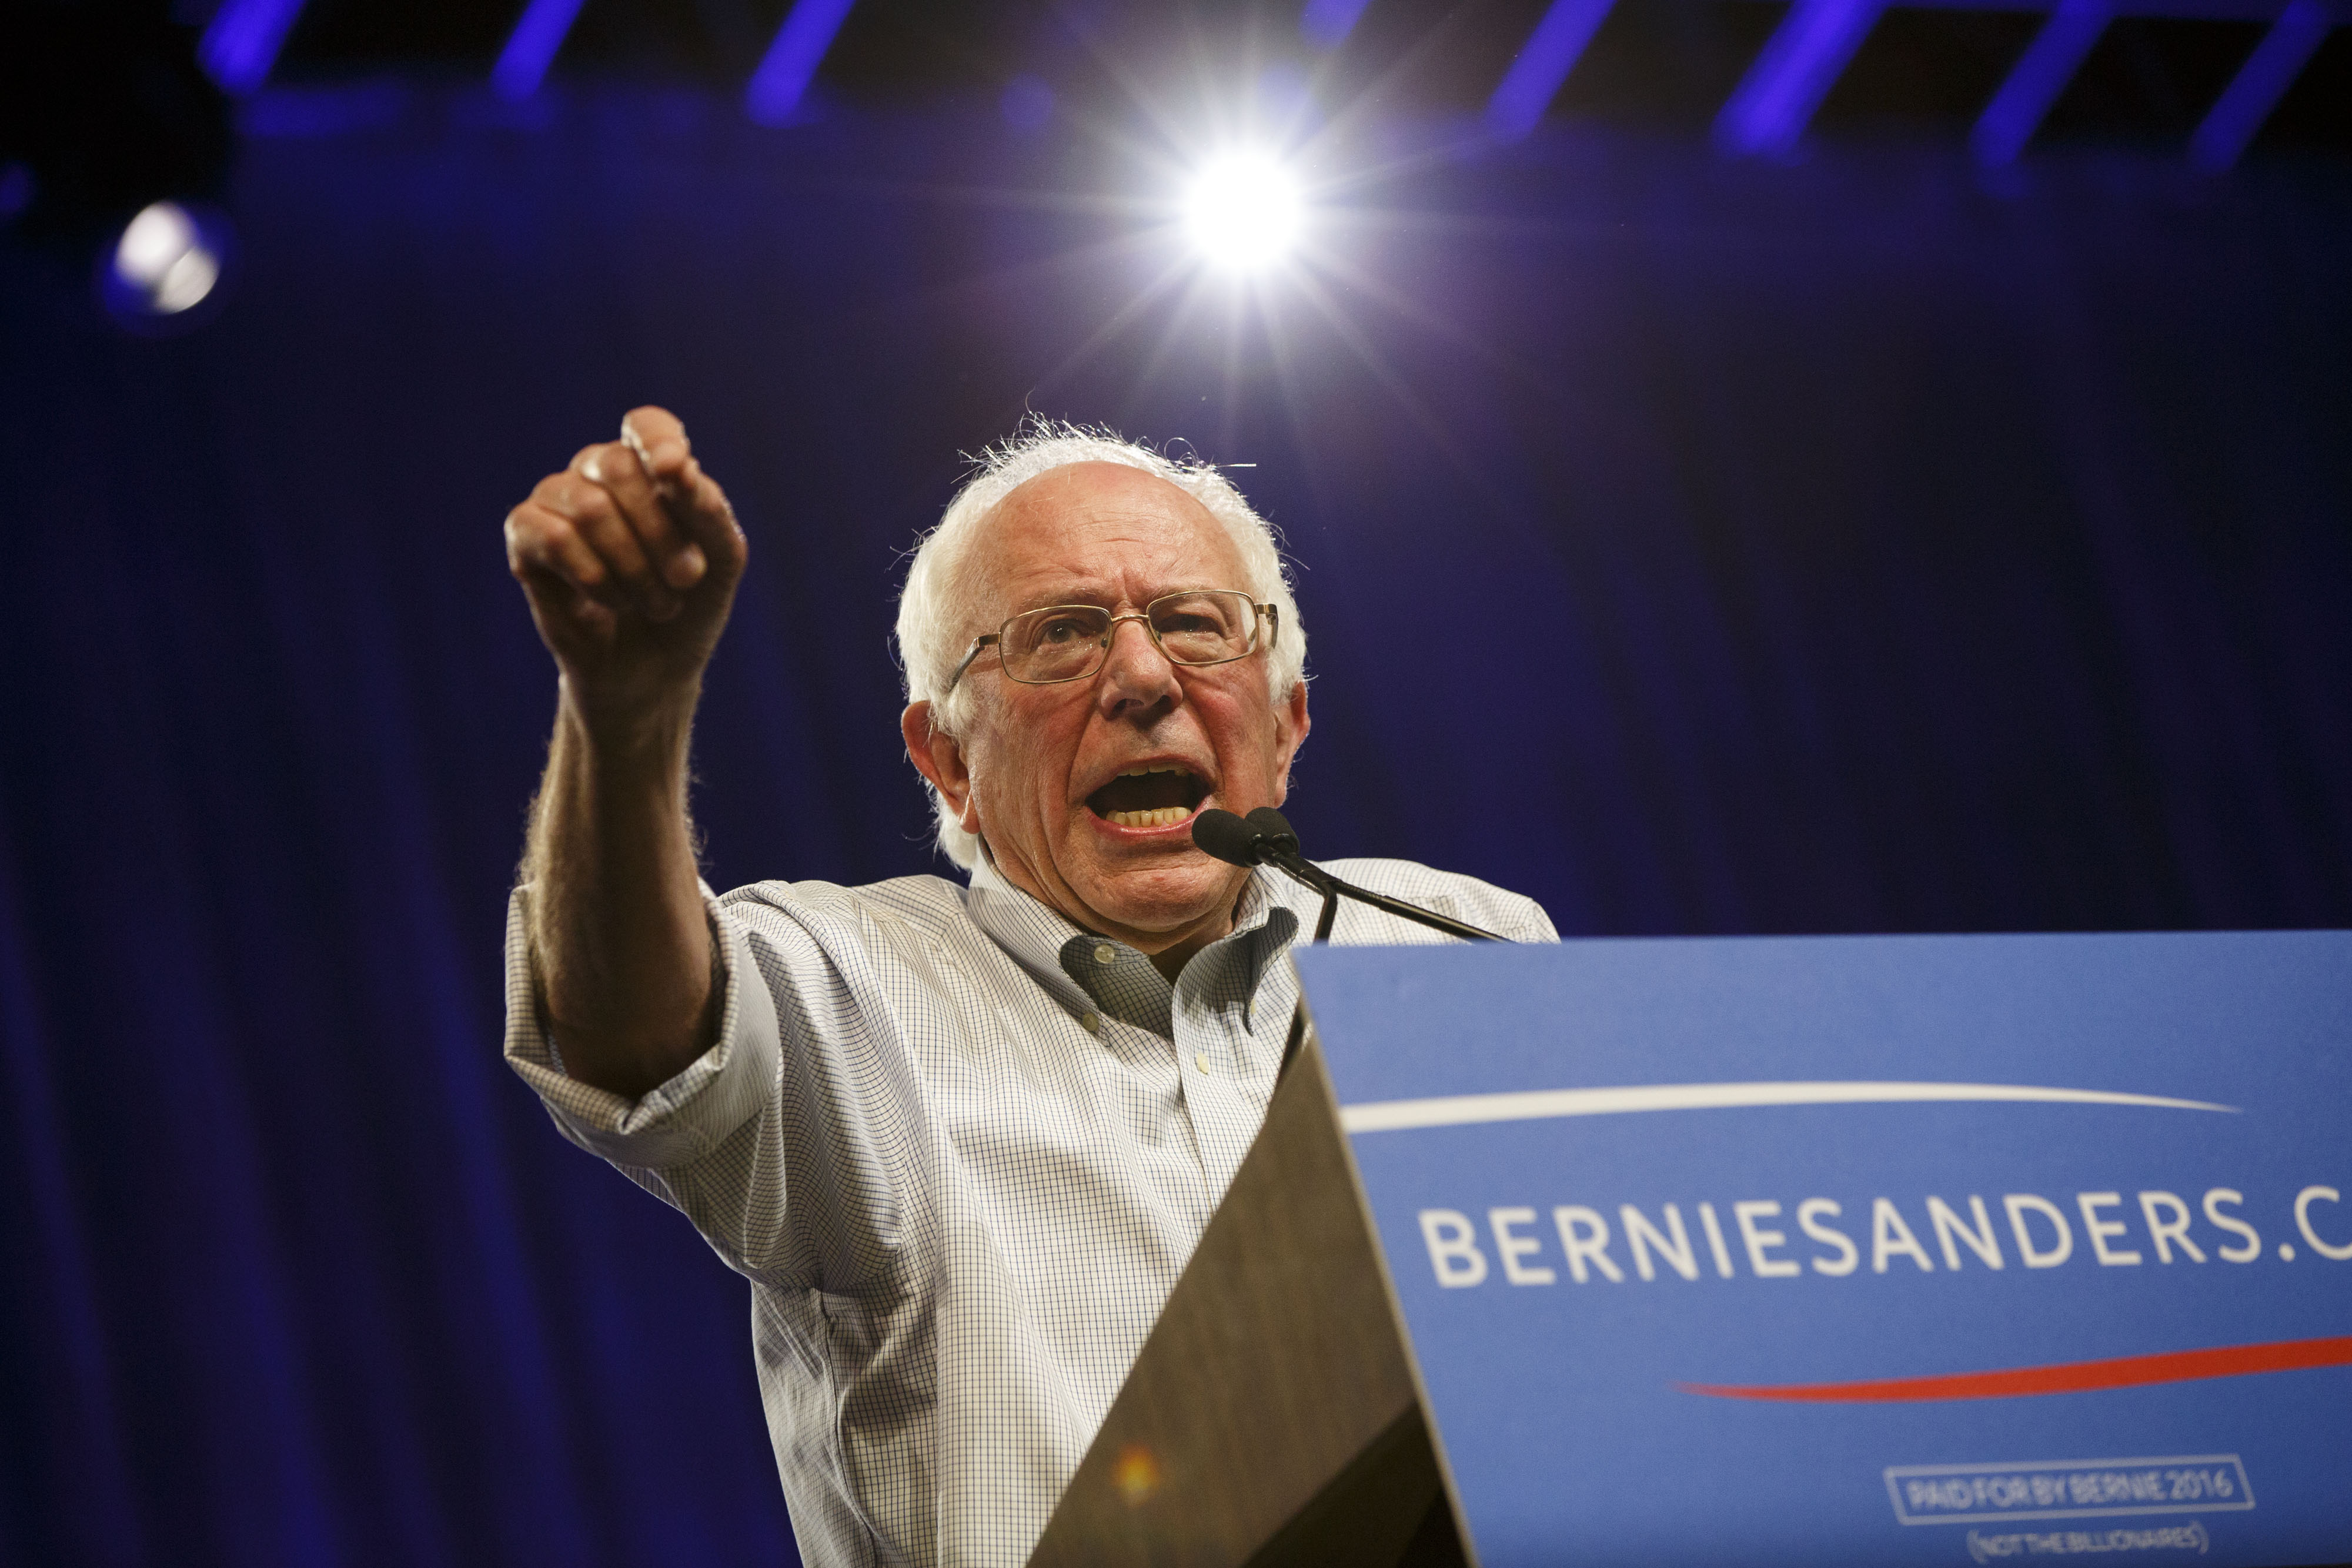 U.S. Senator Bernie Sanders gestures as he speaks during a campaign event at the LA Memorial Sports Arena in Los Angeles on Aug. 10, 2015.